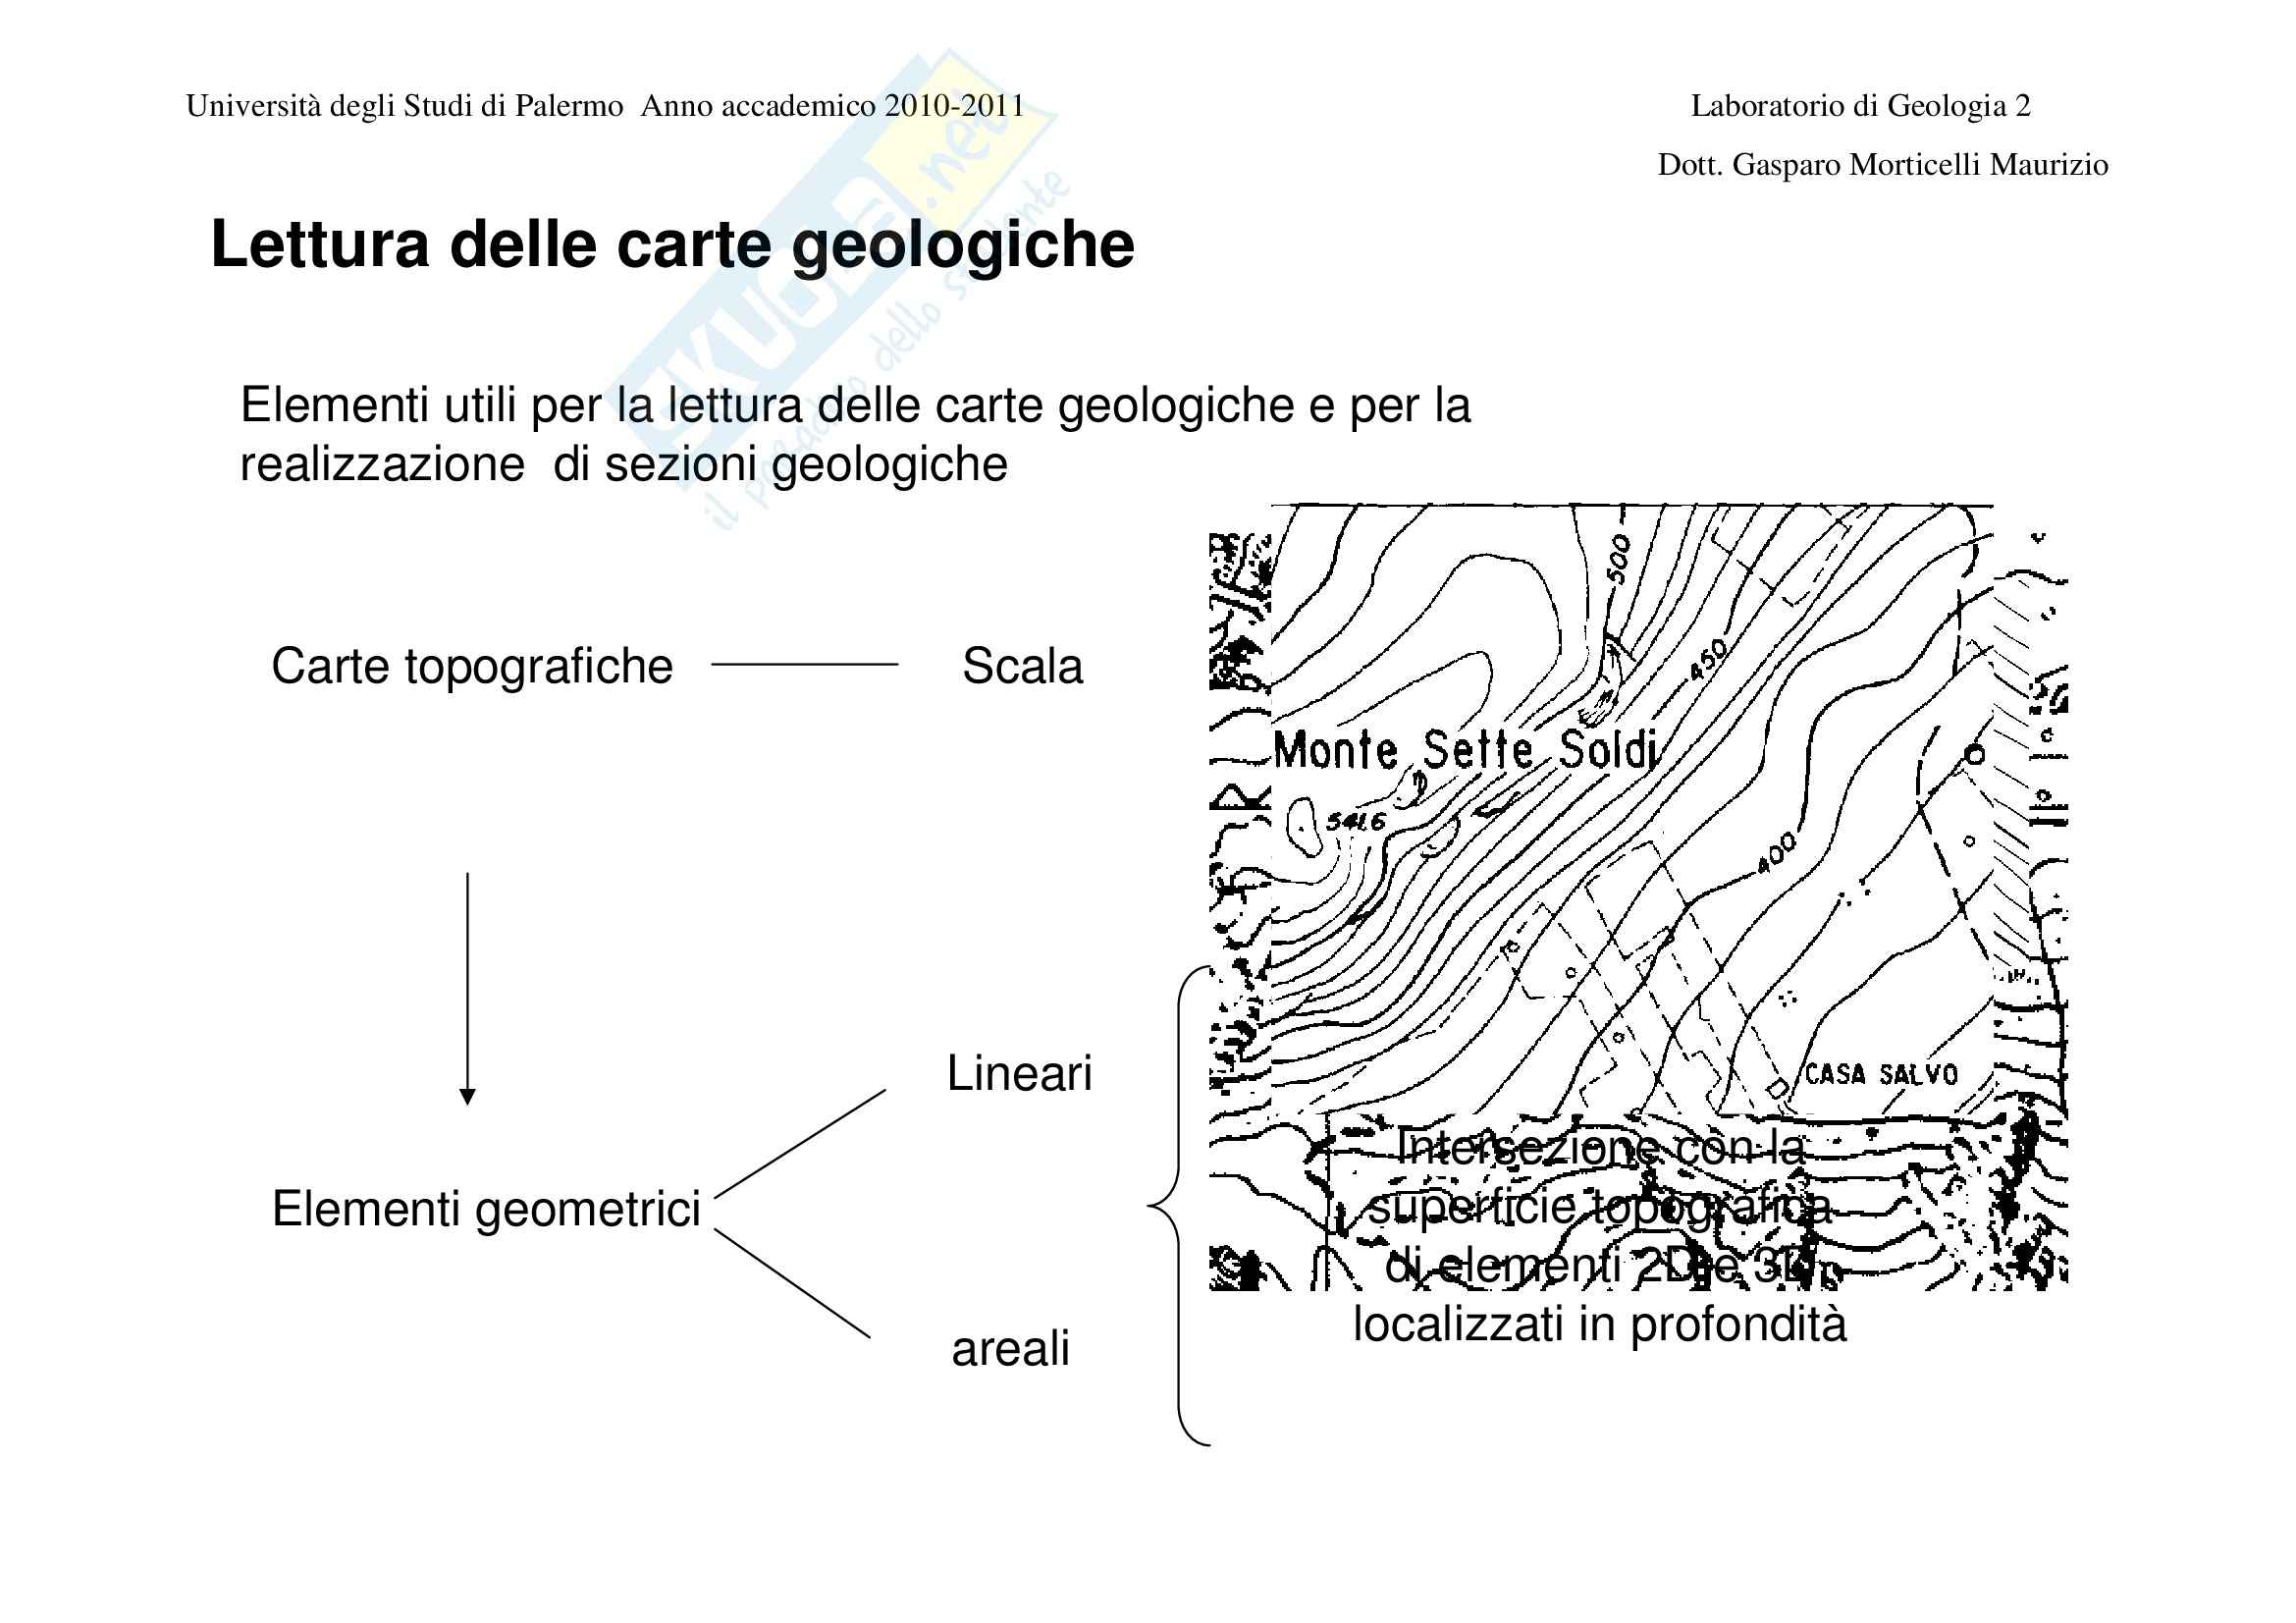 Geologia - Appunti Pag. 2